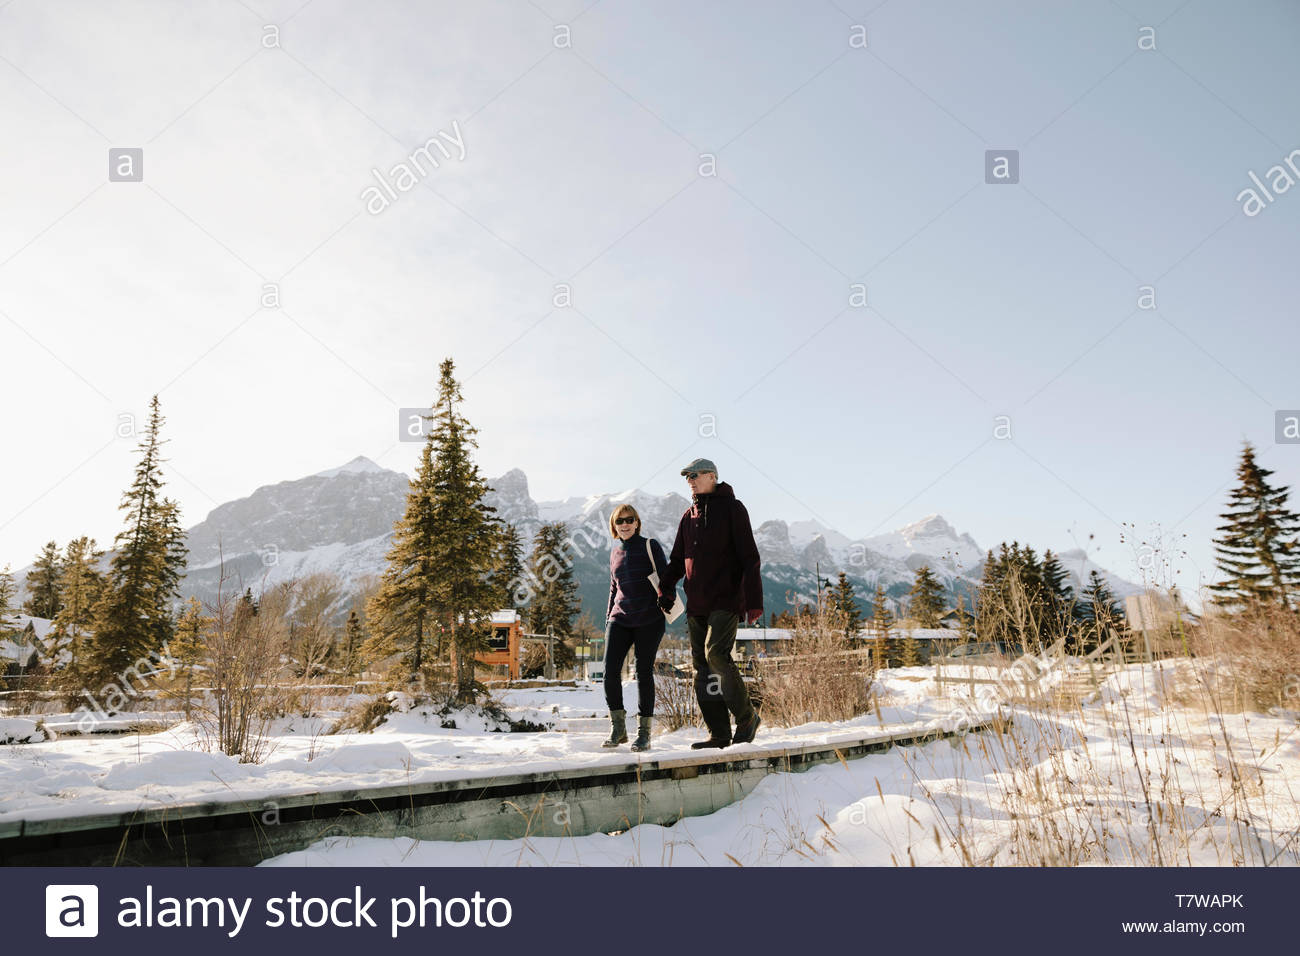 Senior couple walking along sunny, snowy path with mountains in background - Stock Image